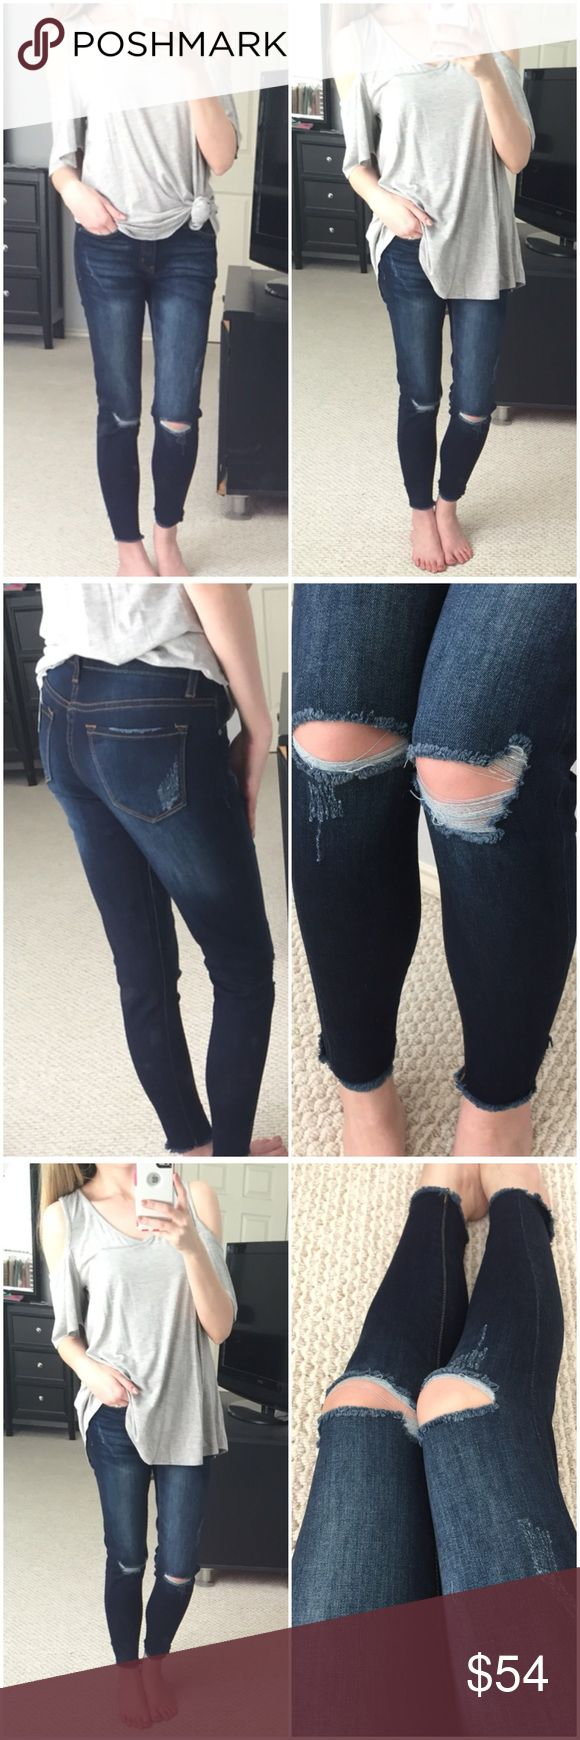 """Dark Wash Slit Knee Skinnies w/ Raw Hem Gorgeous and so stretchy! Dark wash denim with slots on the knees and raw hems on legs. So comfortable with high waist rise. Great color for dressing up your denim! May be able to get other sizes! Just ask 👍 75% cotton 20% polyester 3% viscose 2% spandex. Modeling 1/24 (I'm a smaller 25. Also very comfortable in 3/25.) Measurements as follows: Waist: (1/24) 13"""" (3/25) 13.5"""" (5/26) 14"""" (7/27) 14.5"""" Hips: (1/24) 15.5"""" (3/25) 16"""" (5/26) 16.5"""" (7/27) 17""""…"""